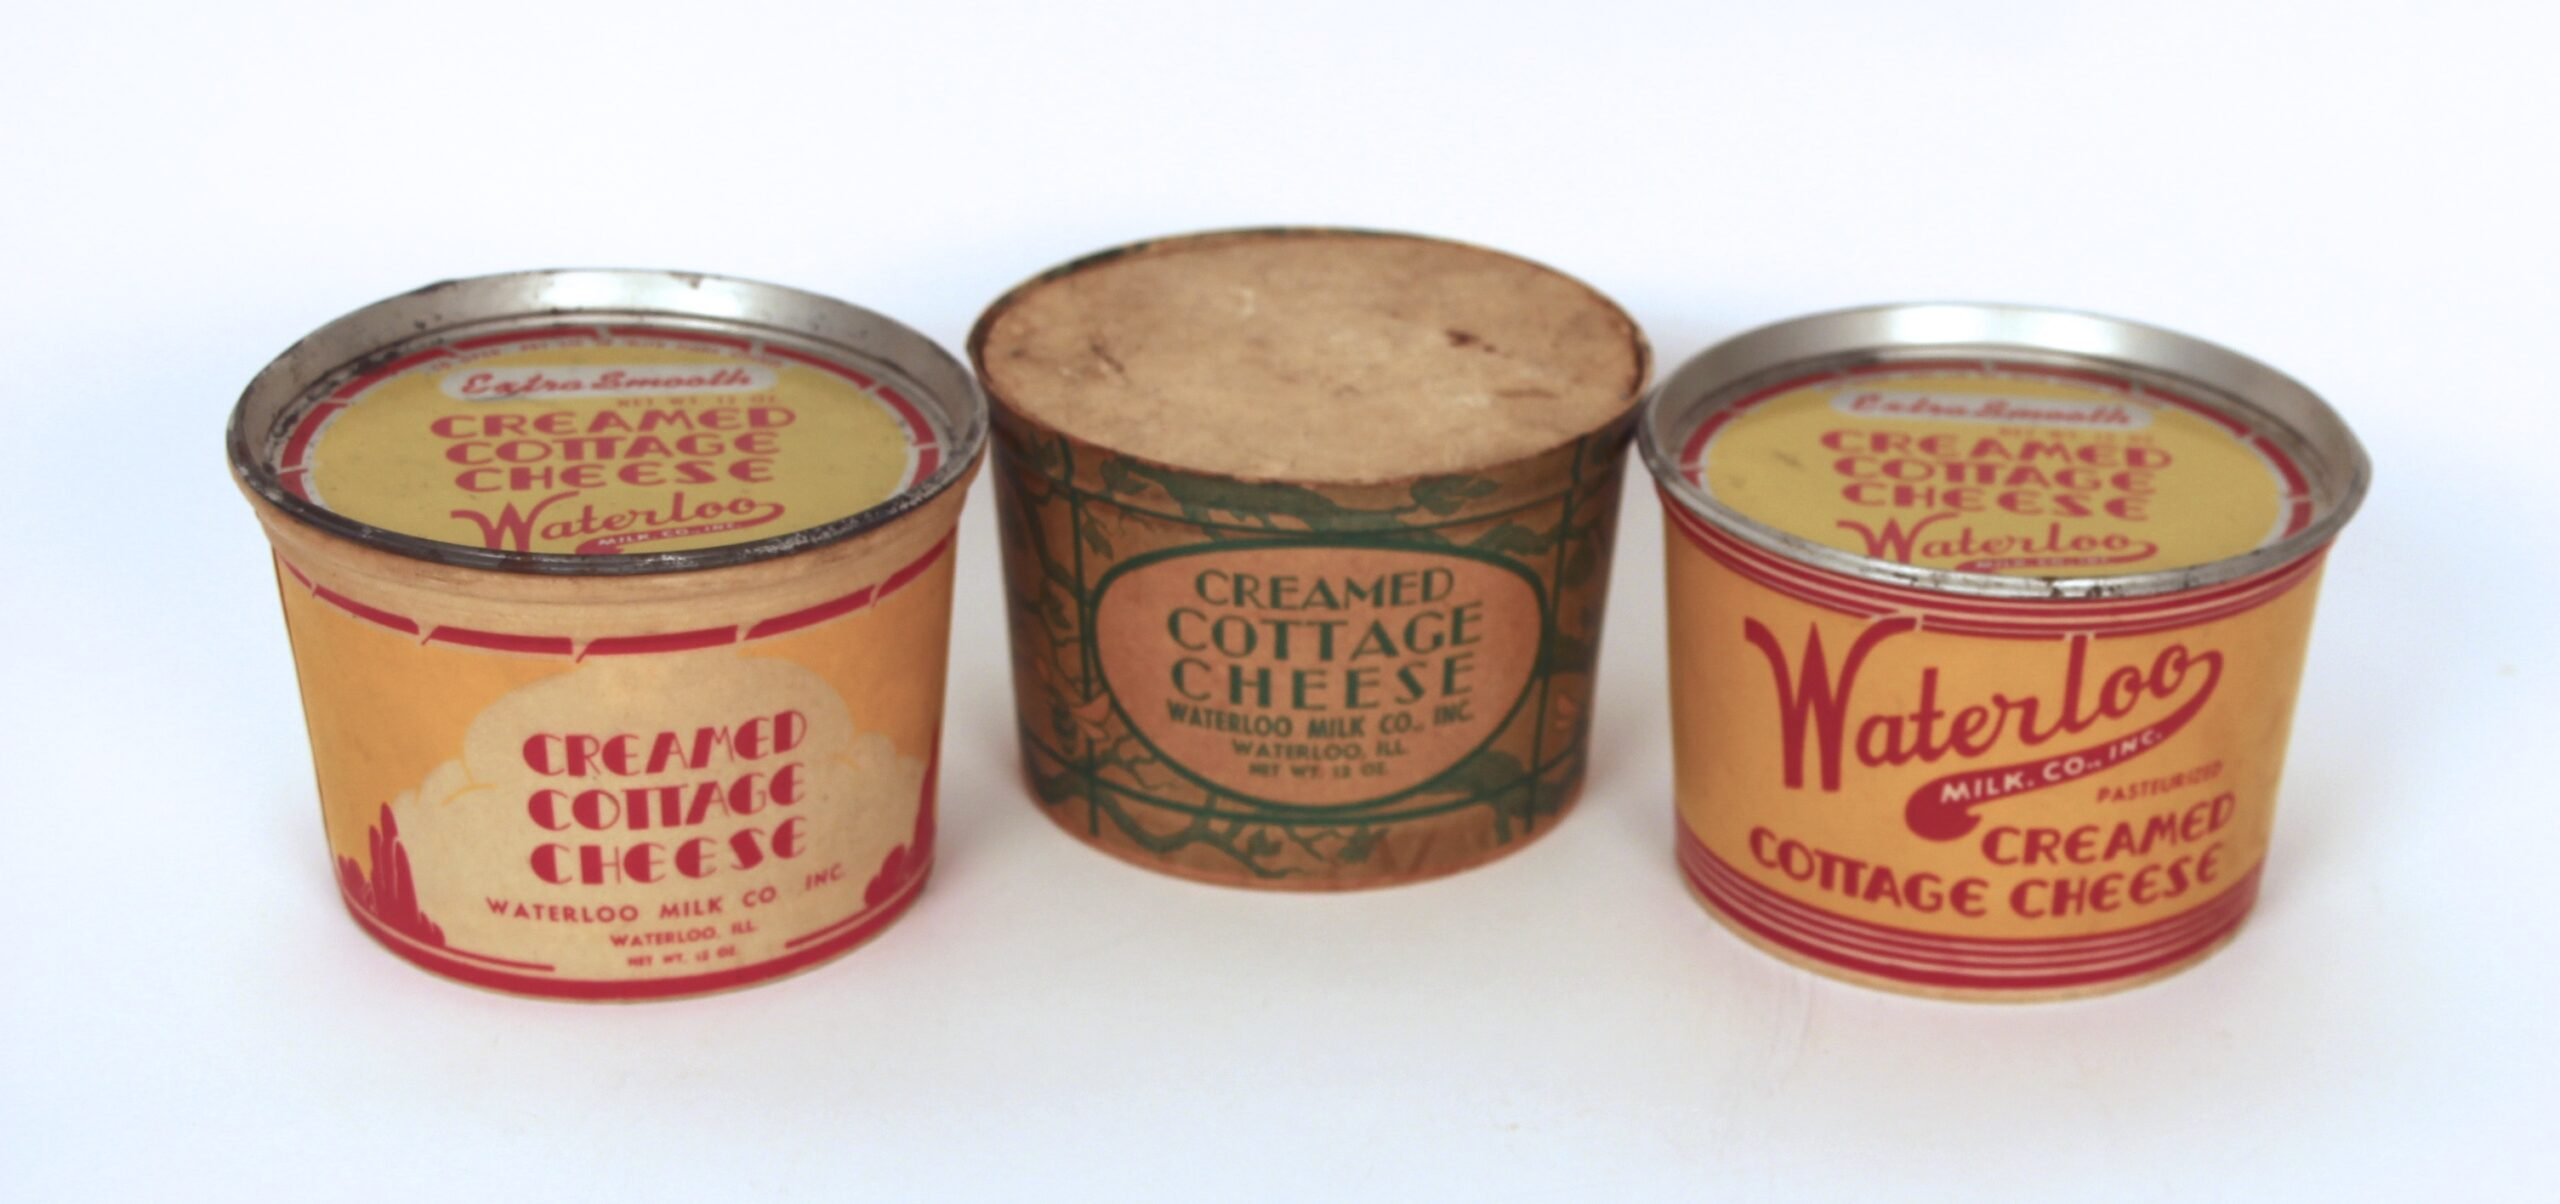 Waterloo Milk Co. Cottage Cheese Packaging, 1950's